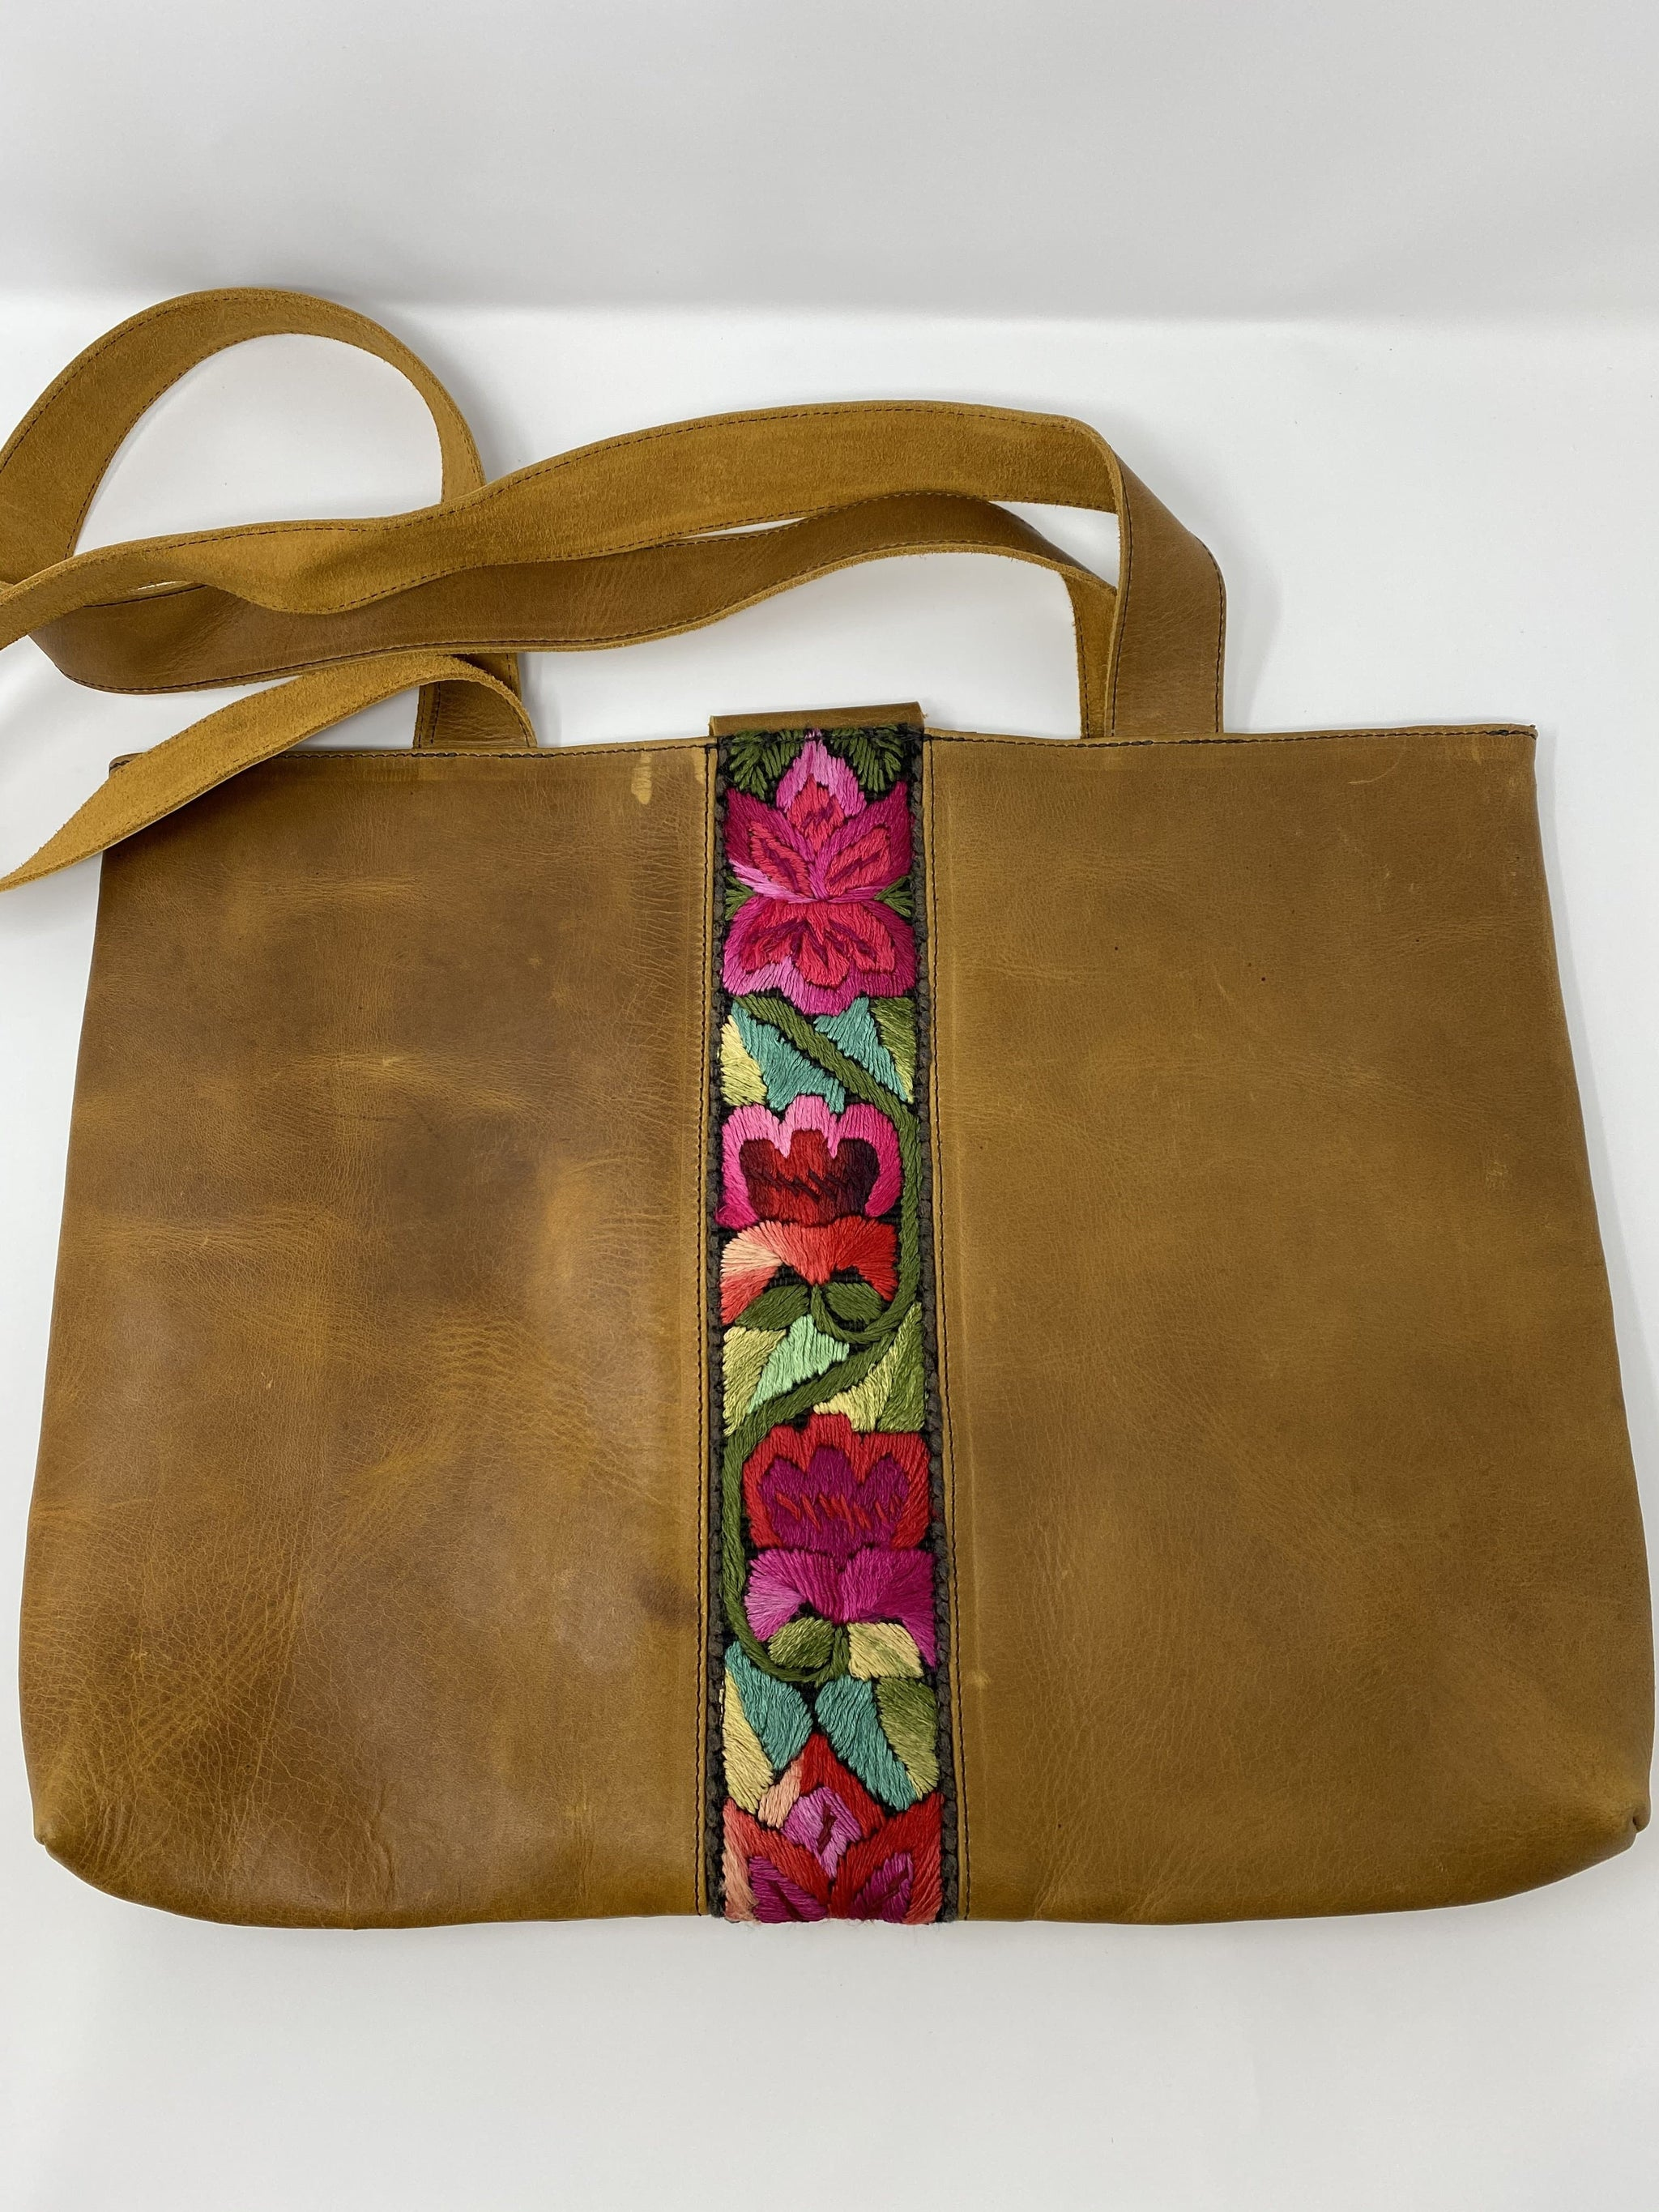 The Elio Genuine Leather Purse with Mayan Embroidery